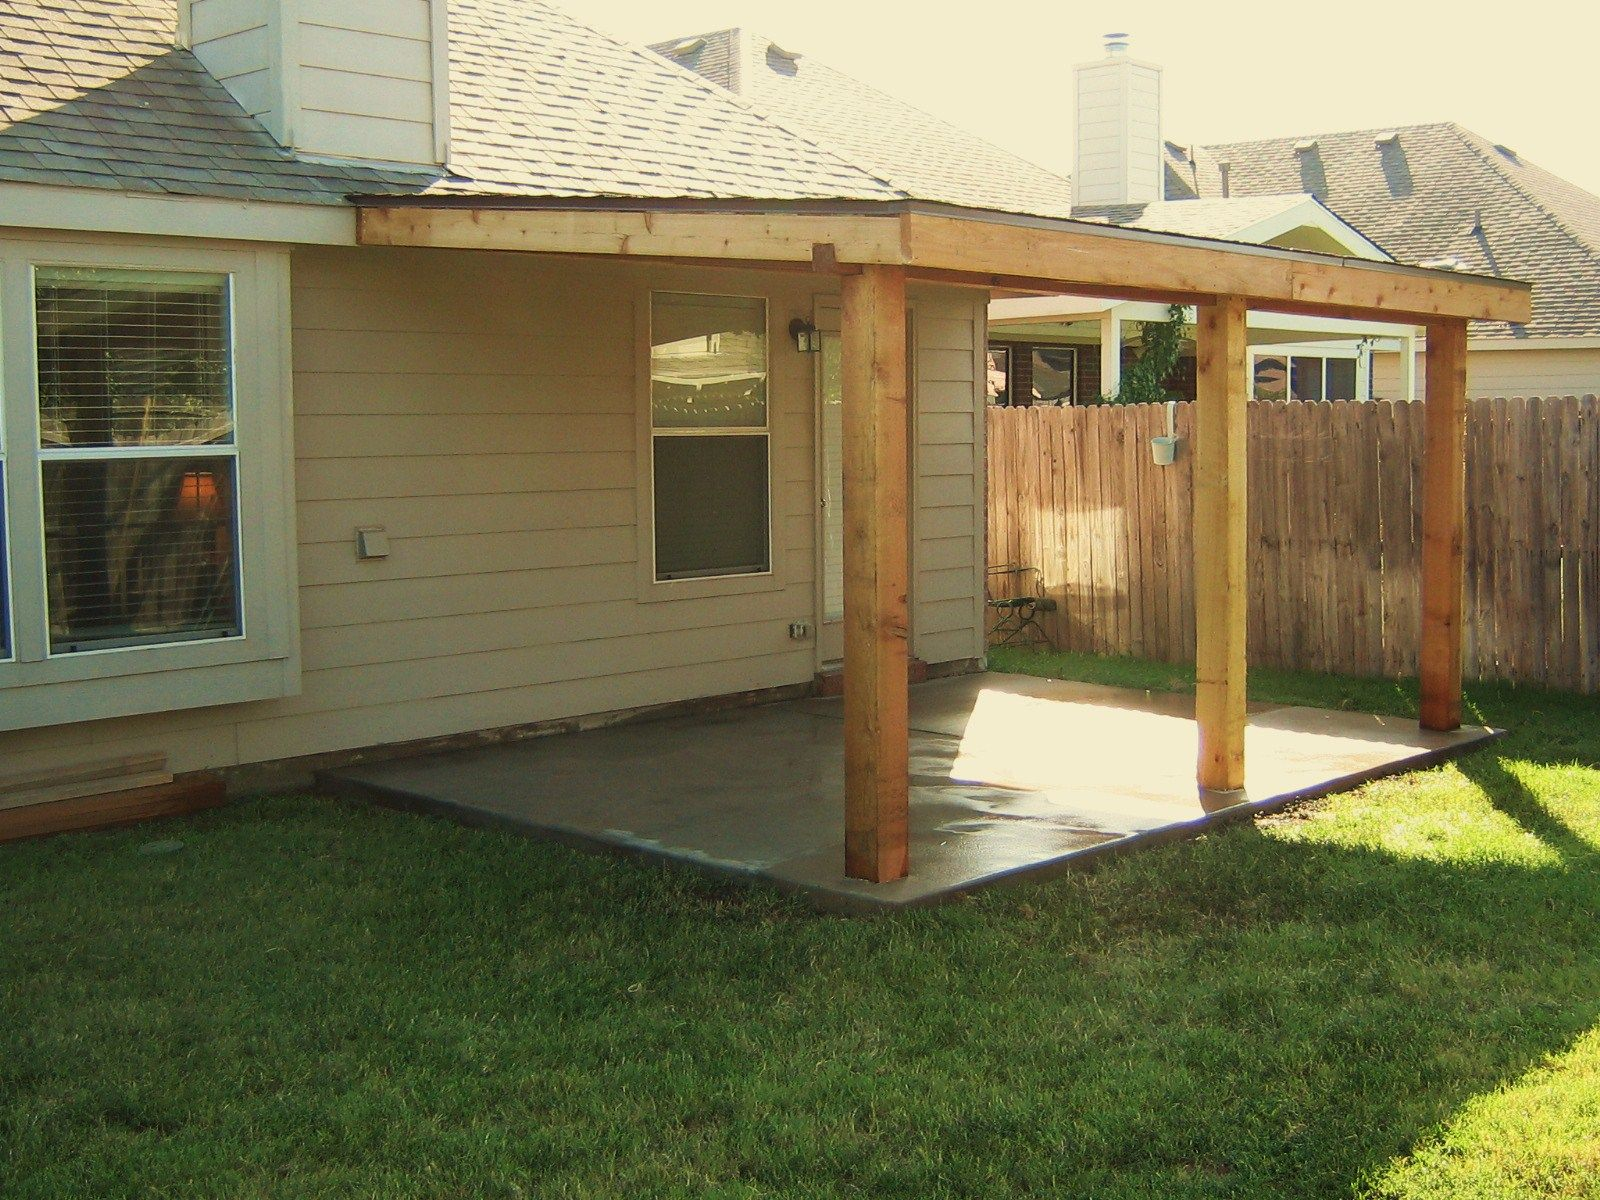 Patio Covers Cedar Patio Cover 10 X16 Basic Model Home And